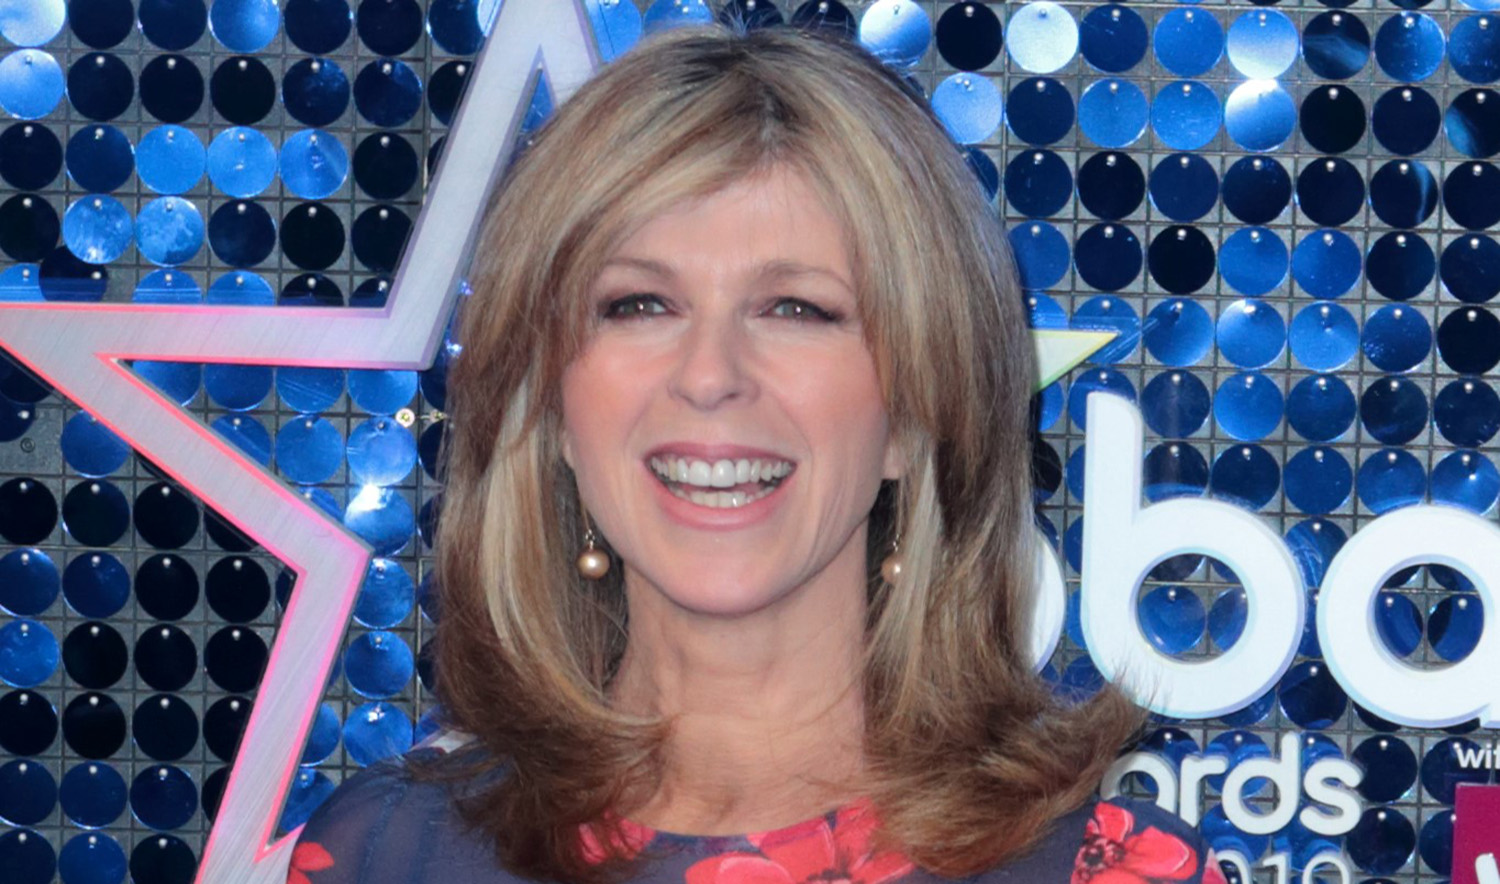 GMB viewers divided over Kate Garraway's plans to return